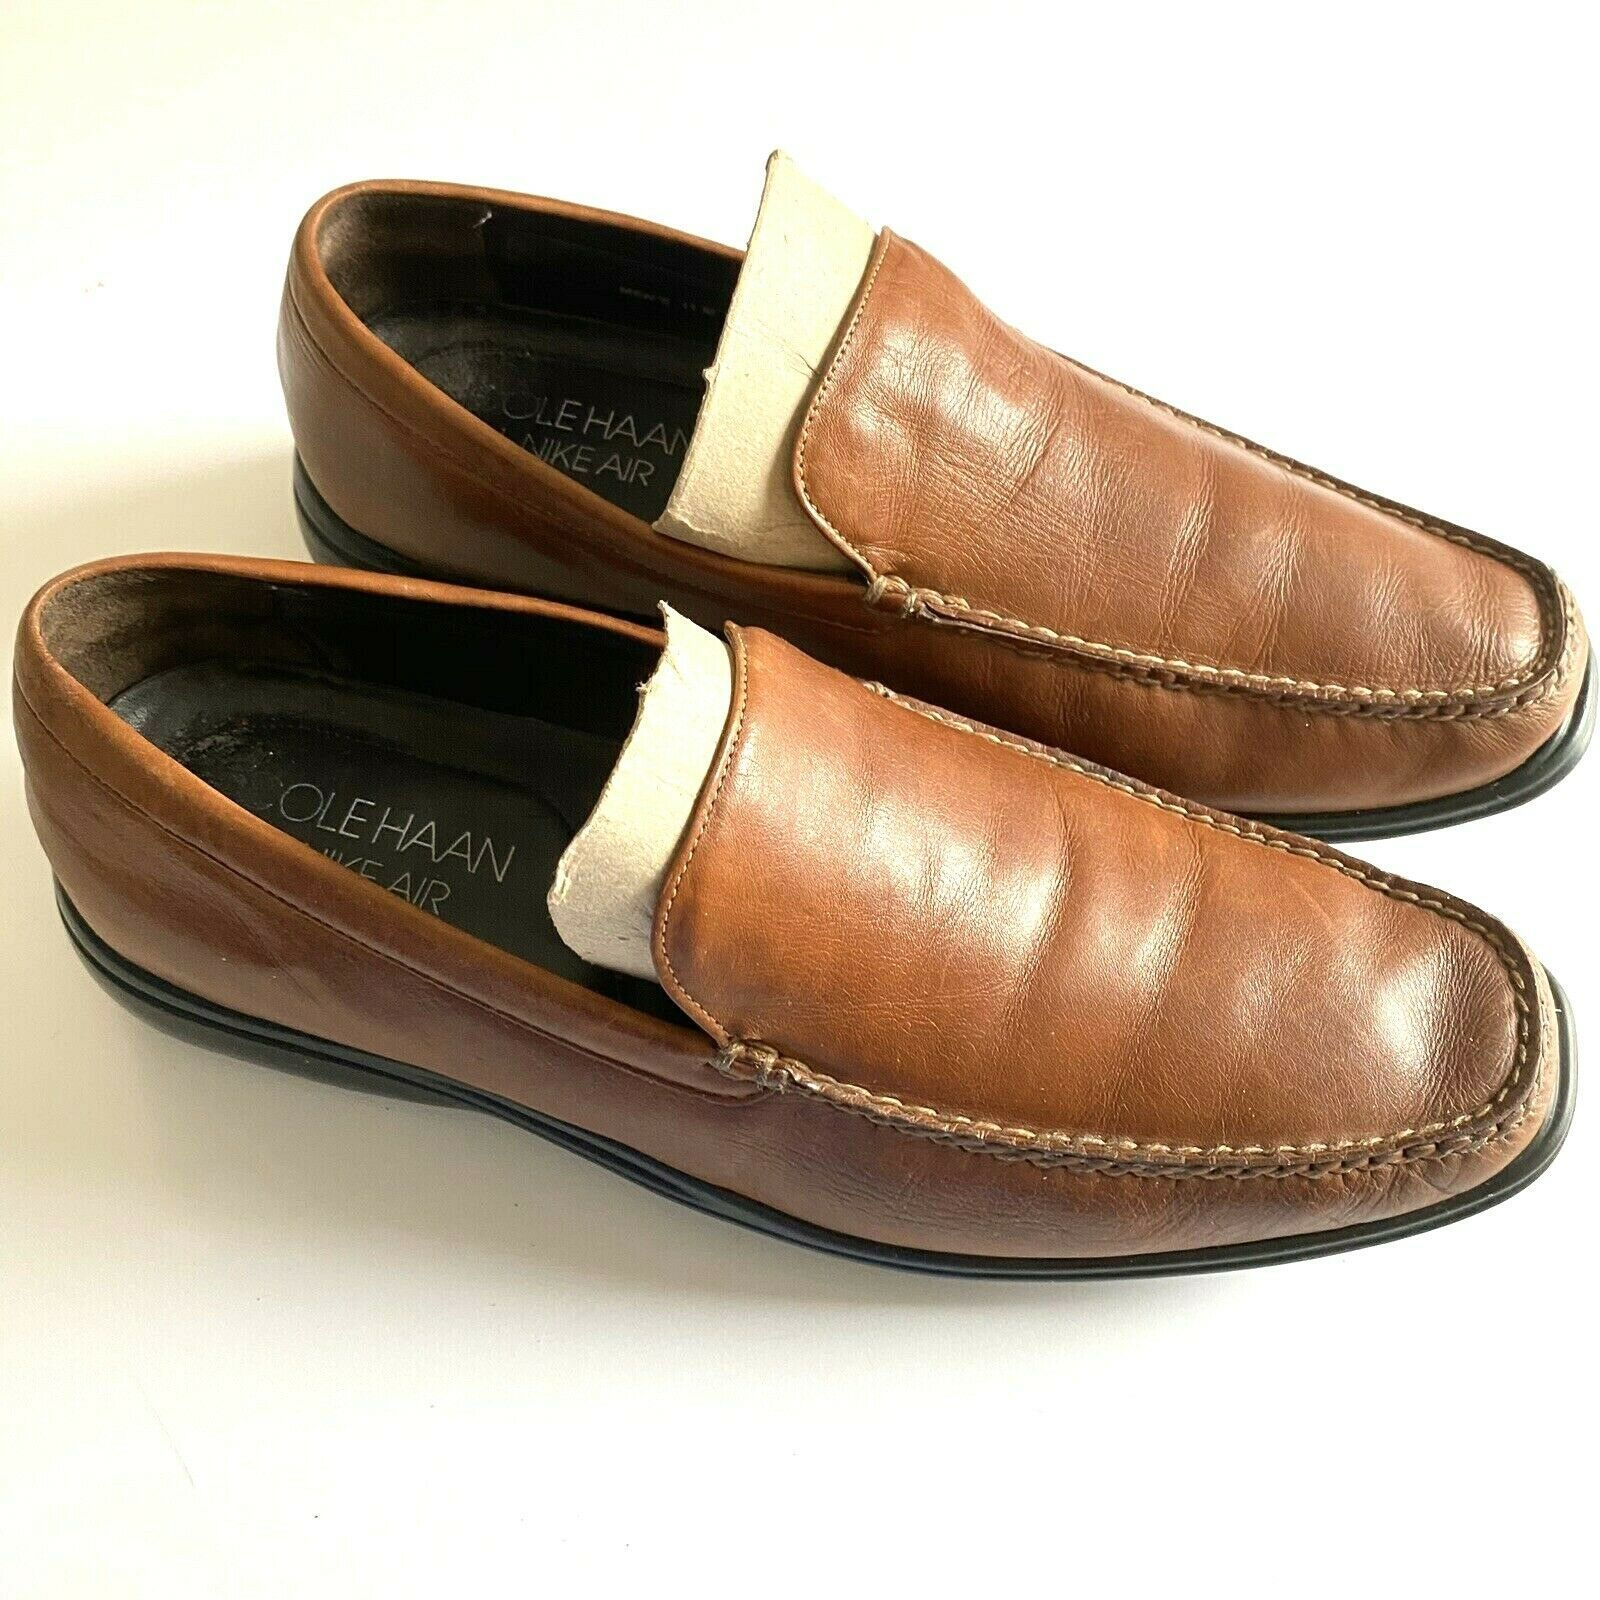 Primary image for Cole Haan Air Brown Leather Loafers Shoes Mens Sz US 11 M EU 44-45 C08204 X KO9